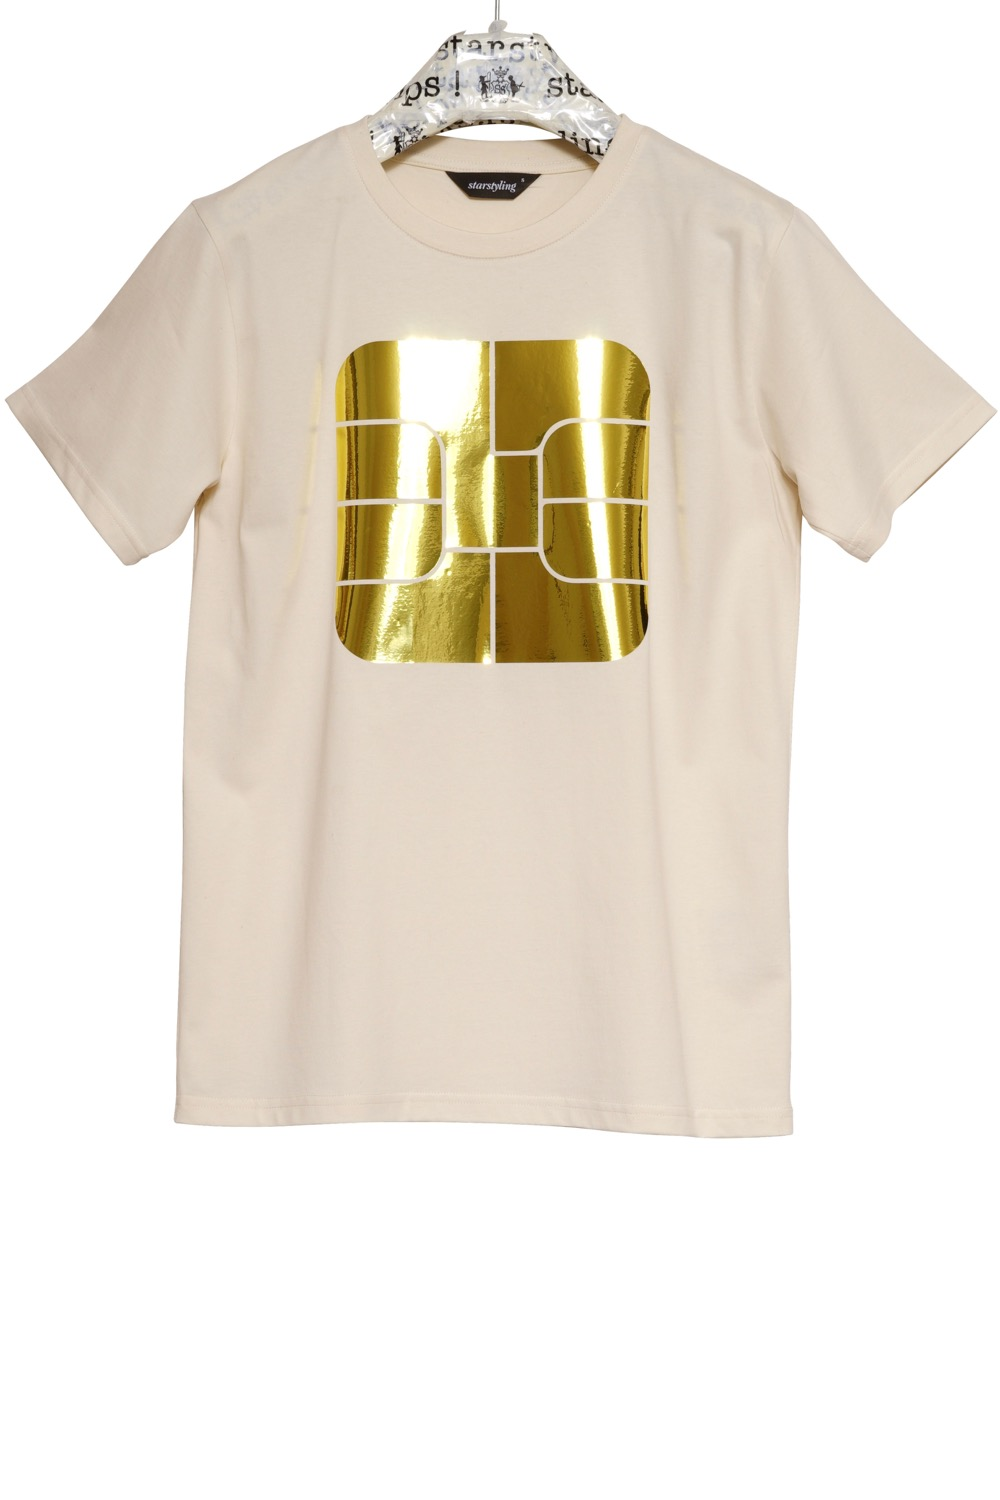 Chip Square T-Shirt - 2